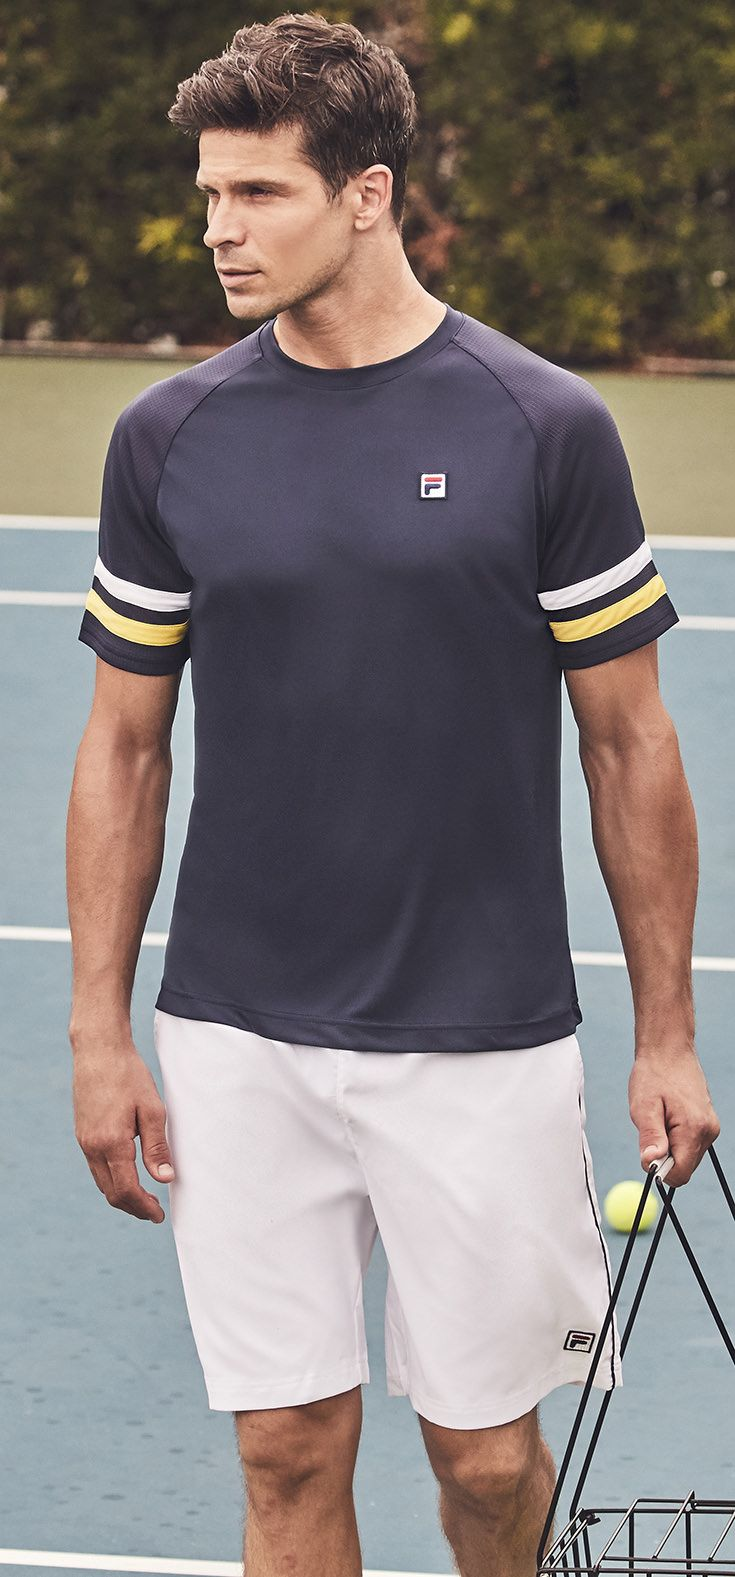 Fila Men S Legend Collection Of Premium Tennis Apparel For Spring 2018 This Tennis Line Includes Performance Tennis Shirts Polos Shorts And Warm Ups In Nav